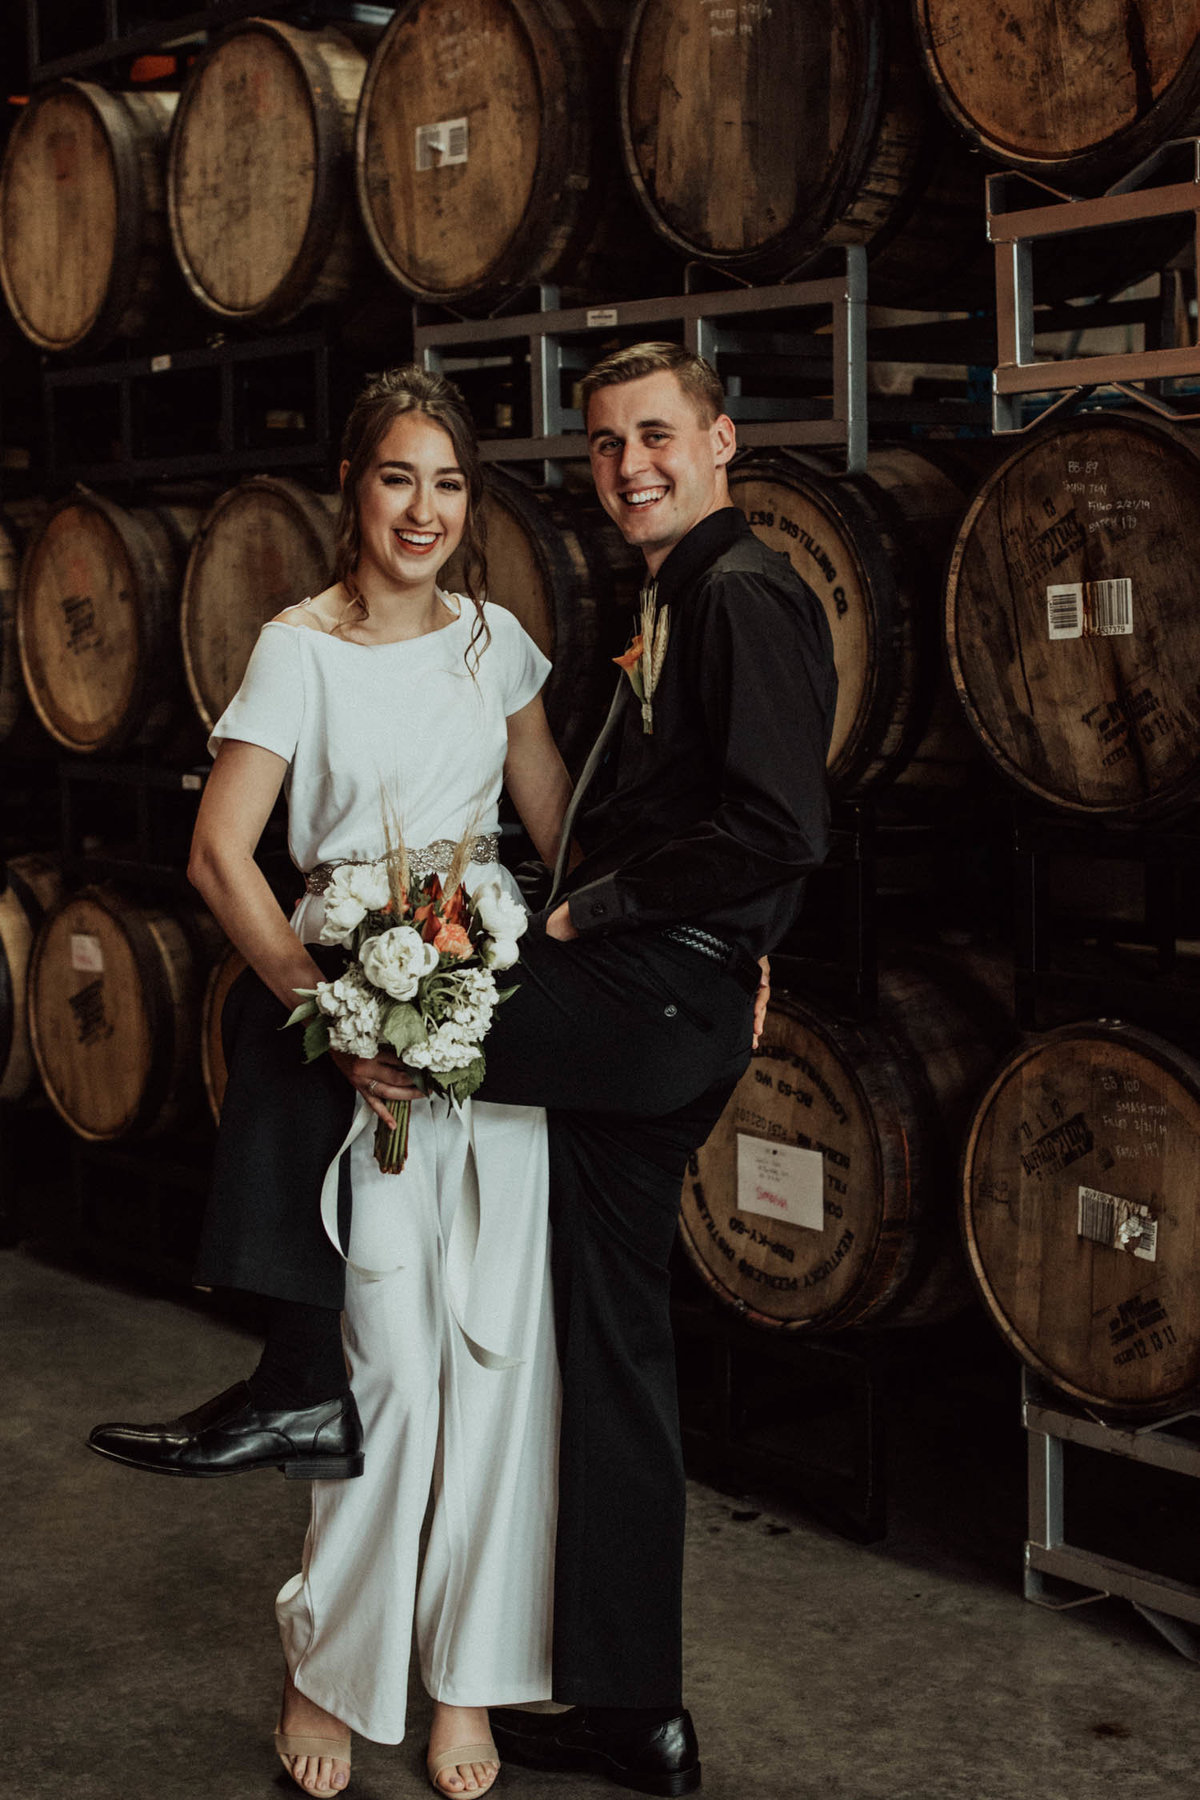 wedding-barrels-brewery-elopement-chicago-il-14